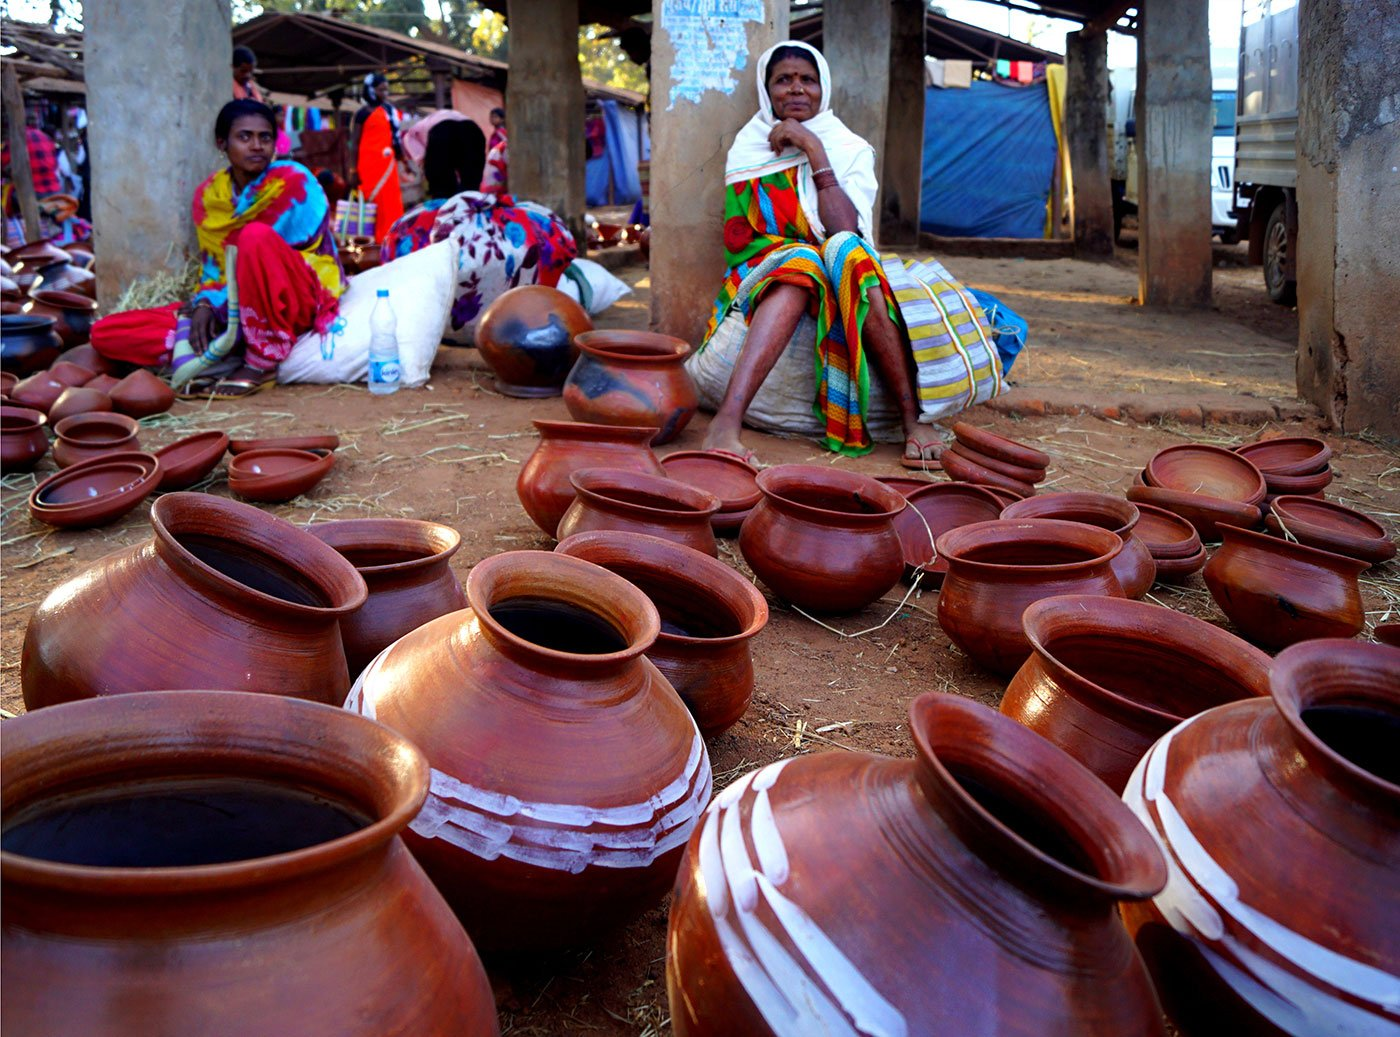 Two women wait with their pots for customers